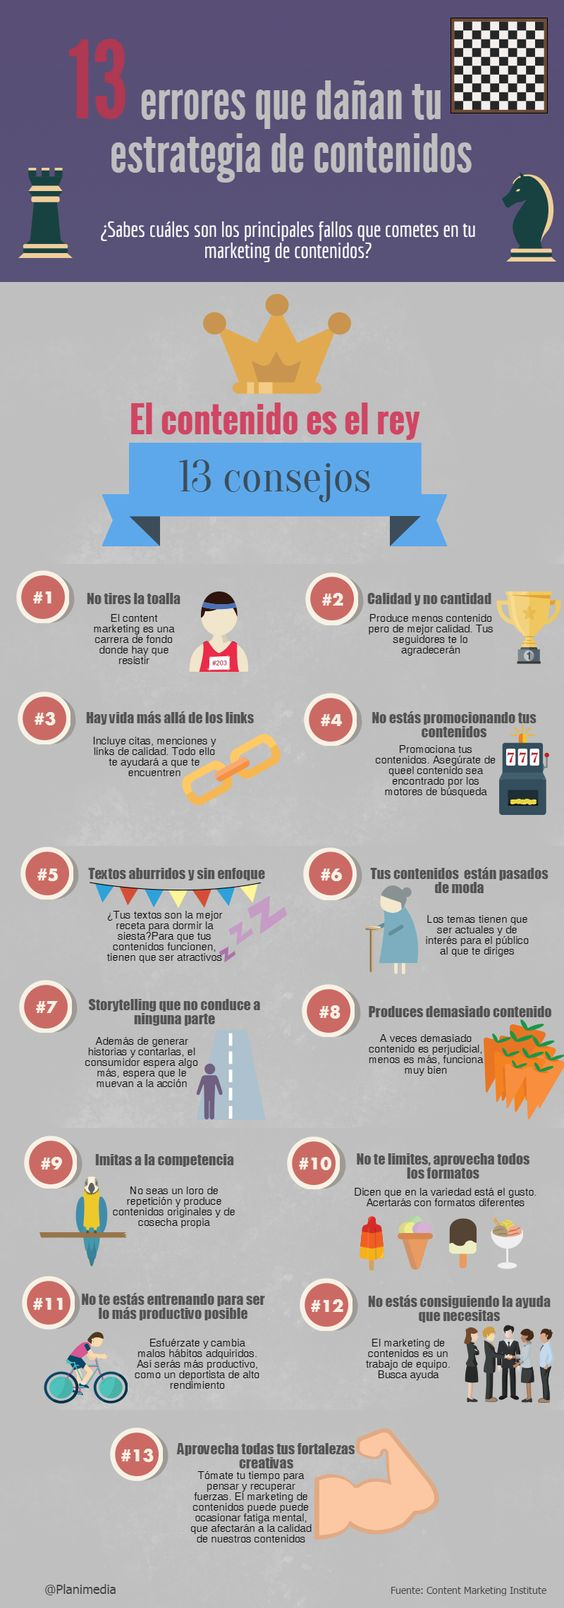 pecados de marketing digital: 13 errores de marketing de contenidos